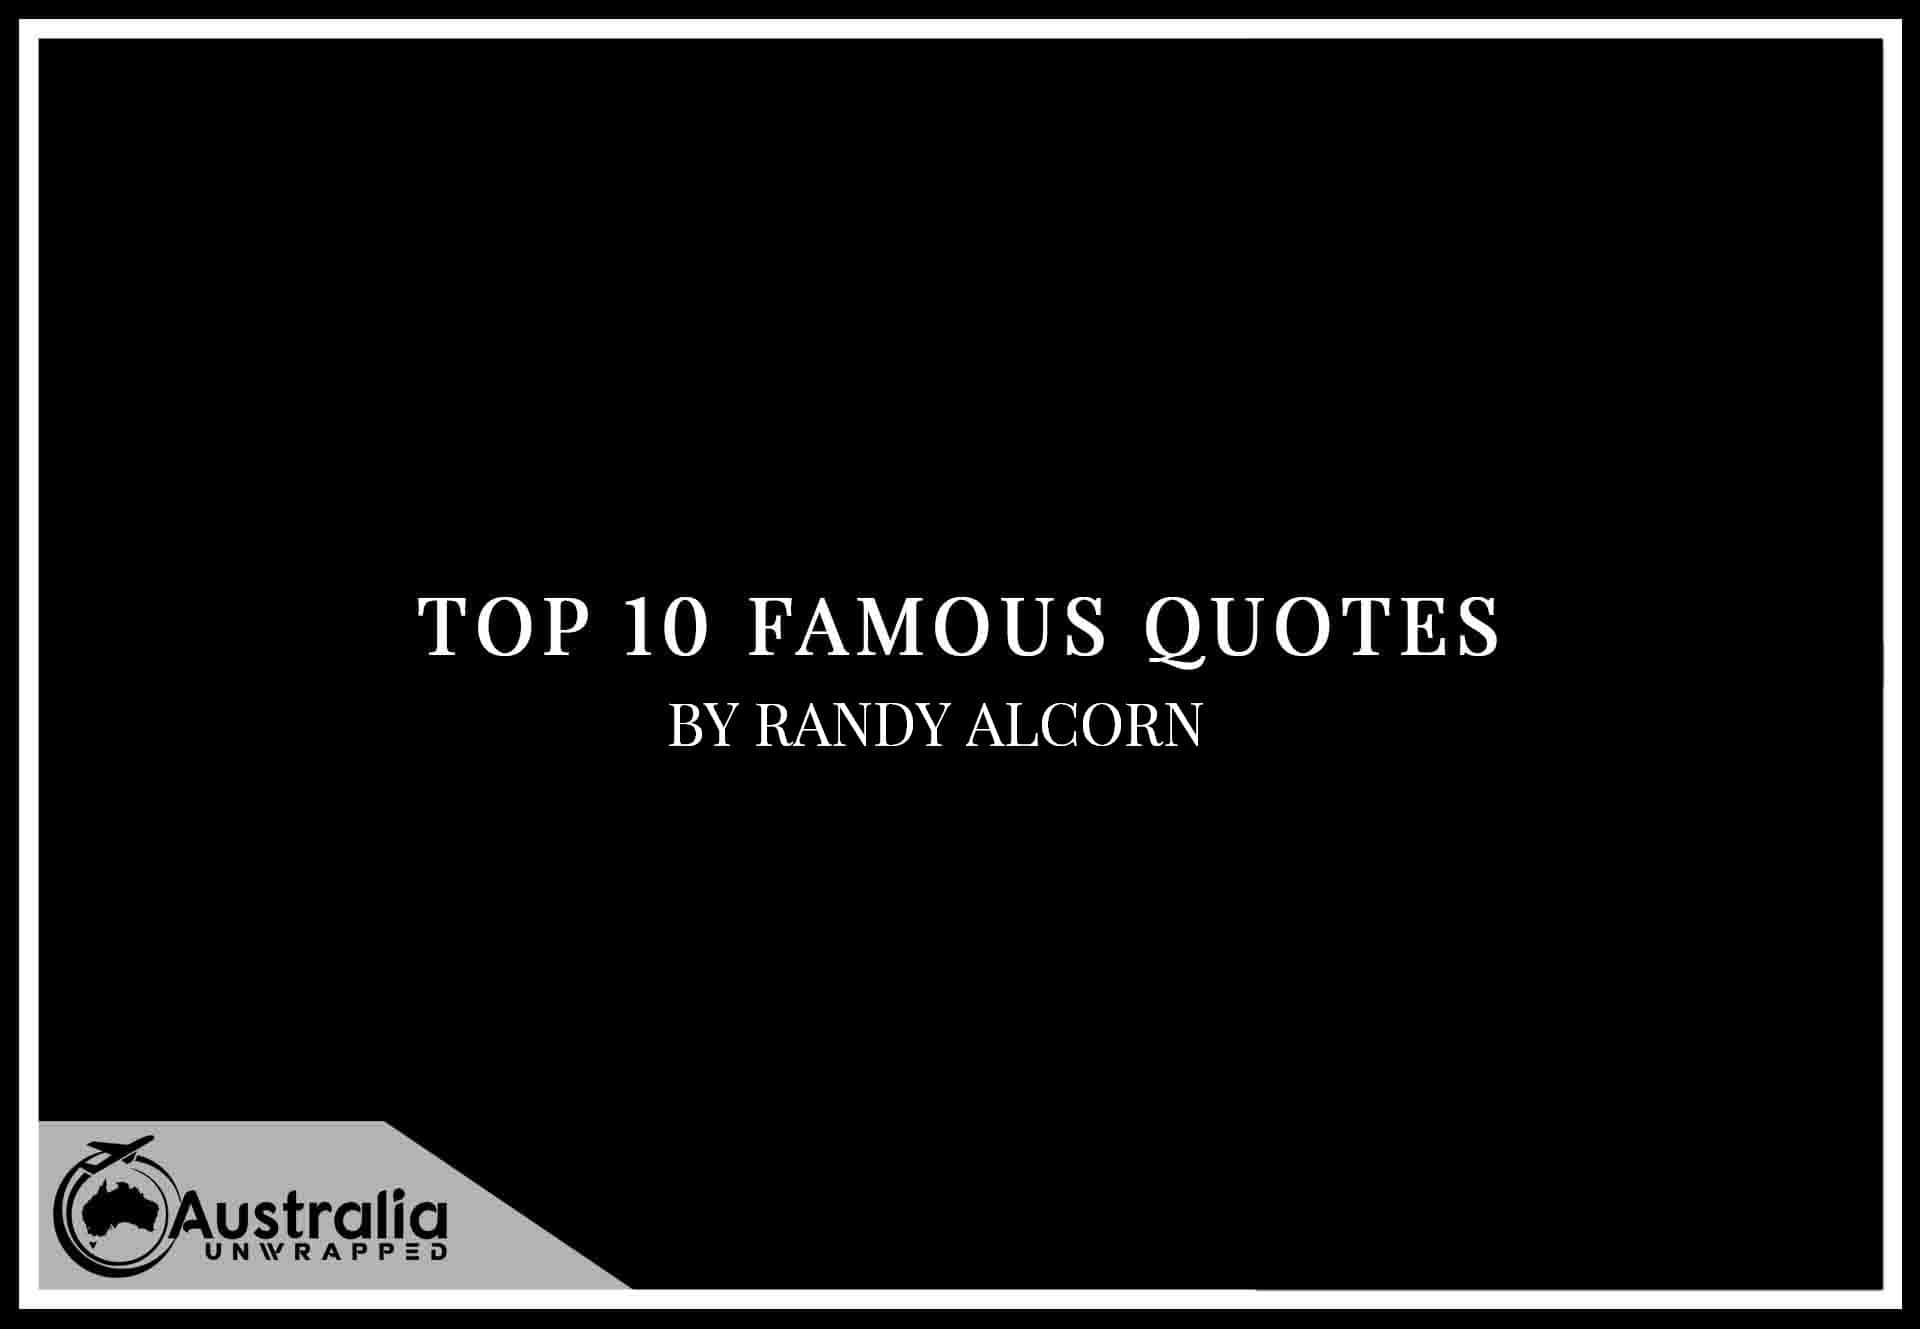 Randy Alcorn's Top 10 Popular and Famous Quotes